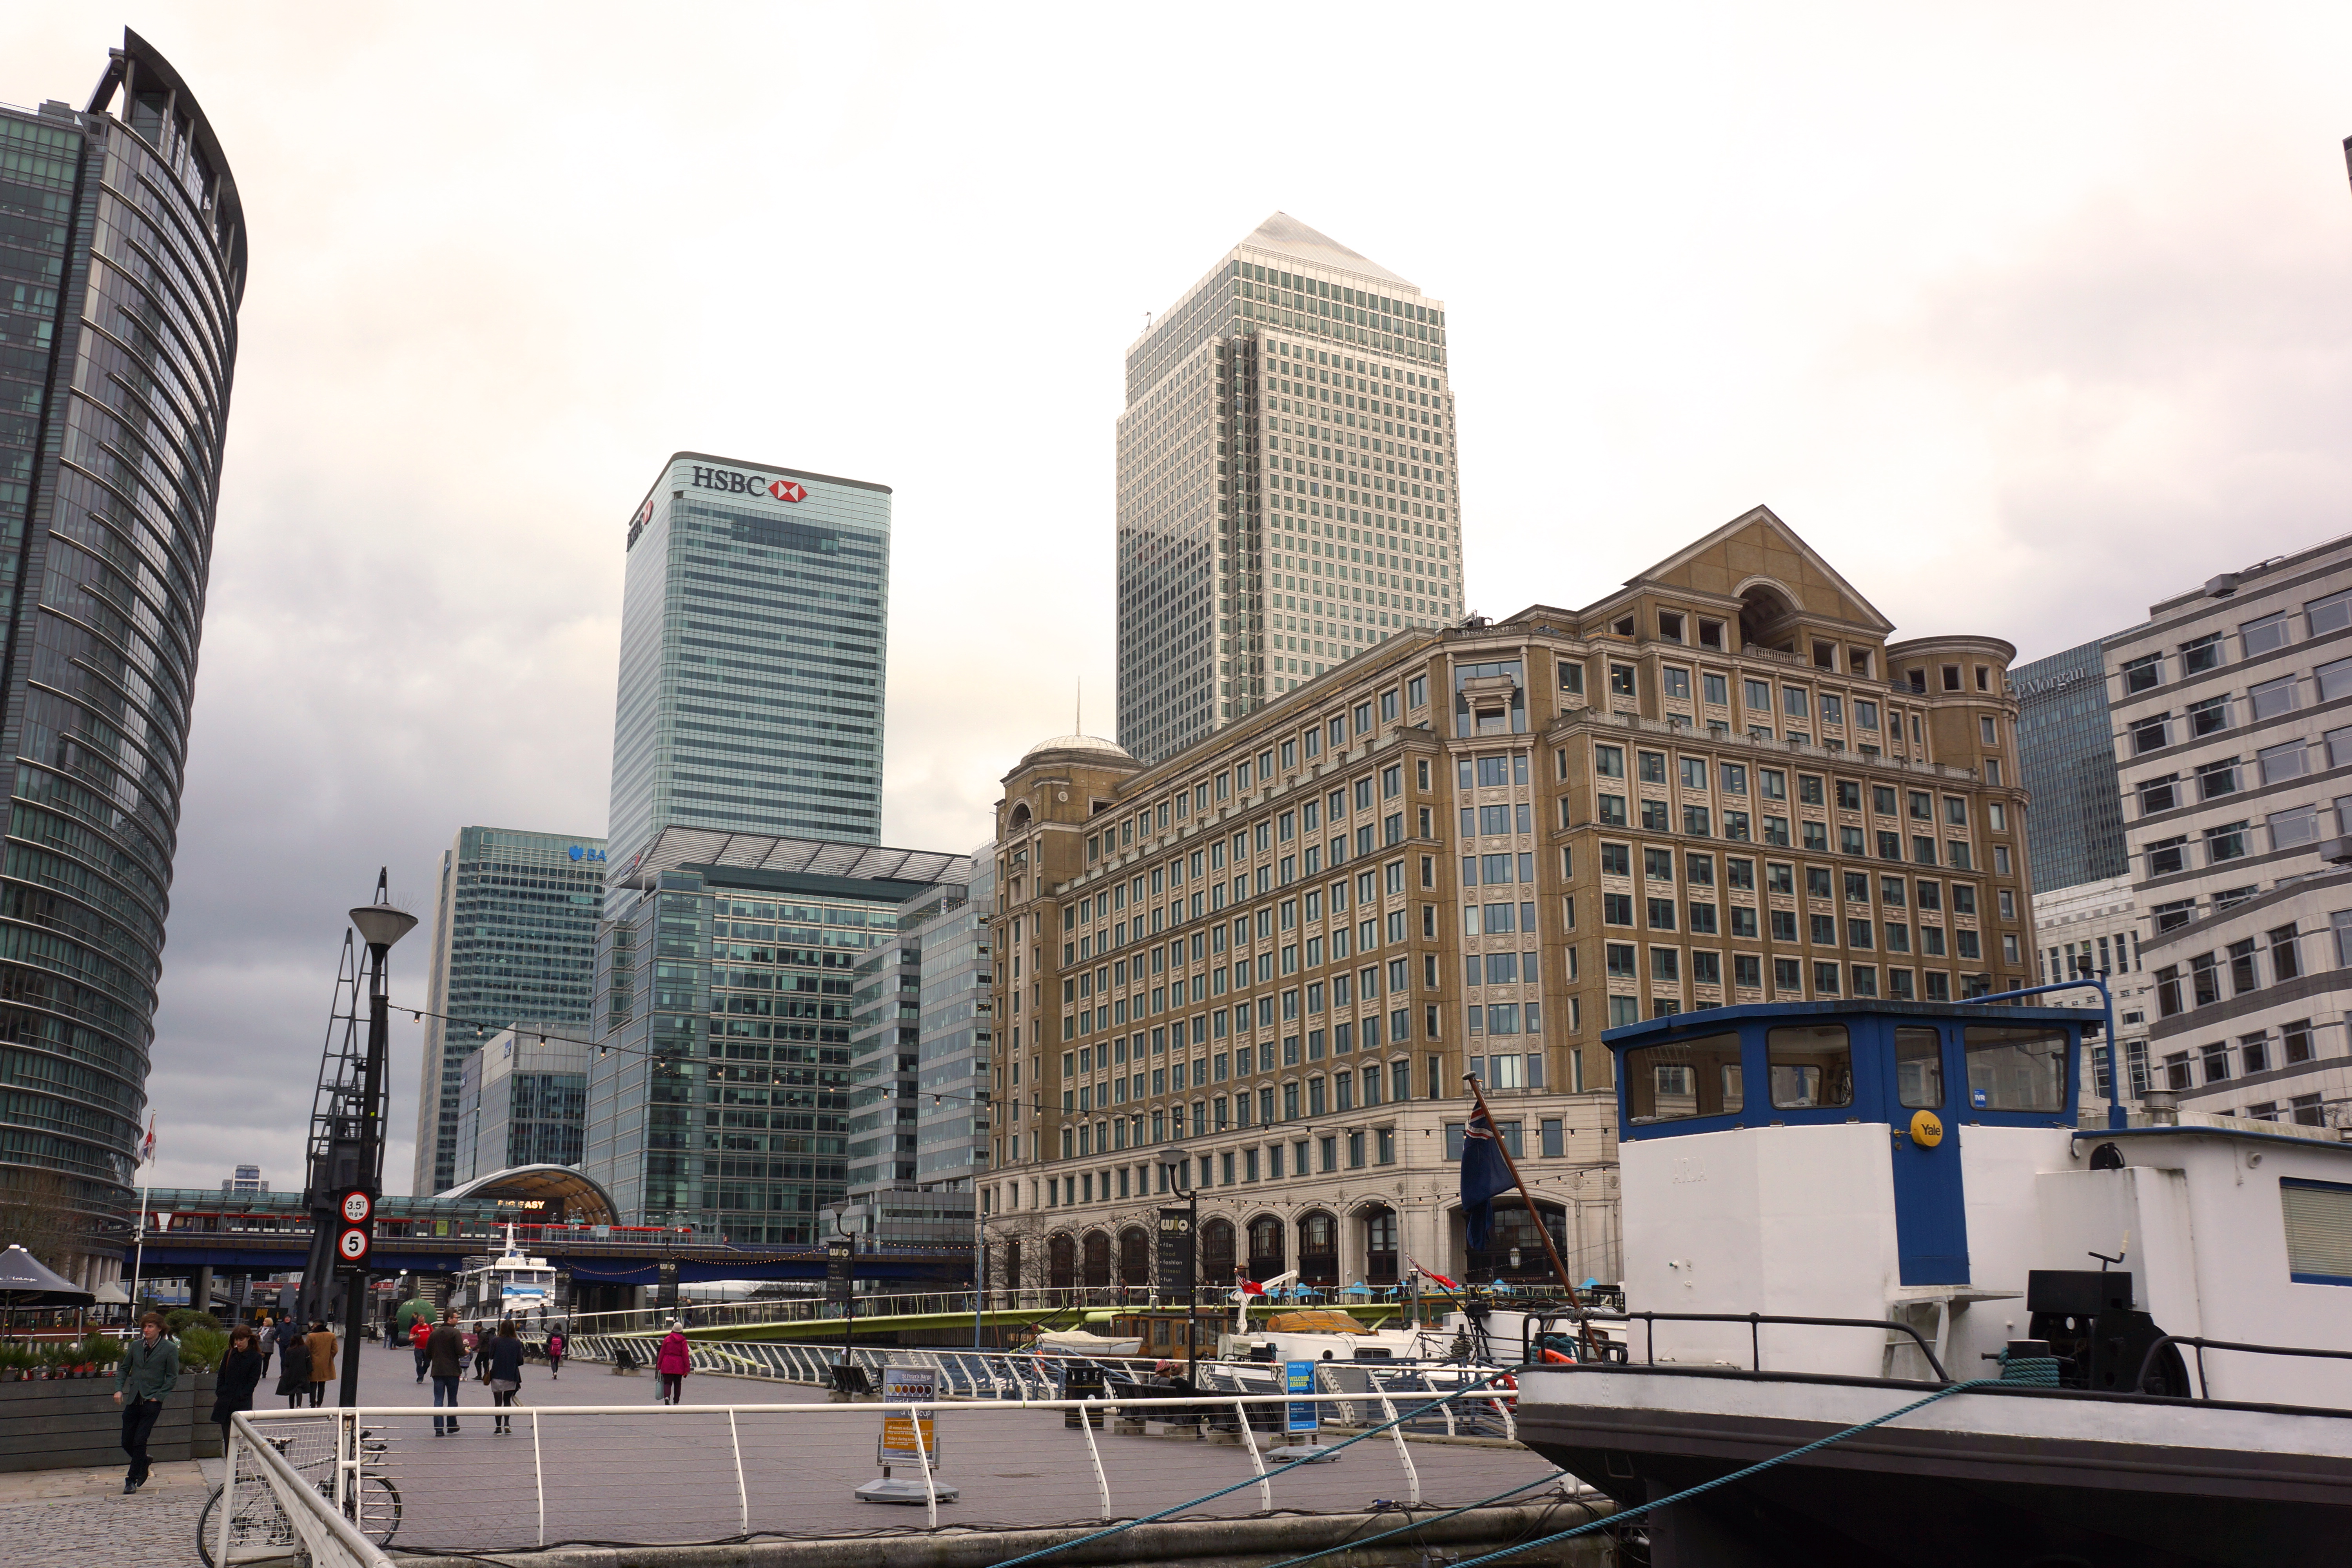 D Exhibition Docklands : Top 10 london: top ten things to see and do in canary wharf and the